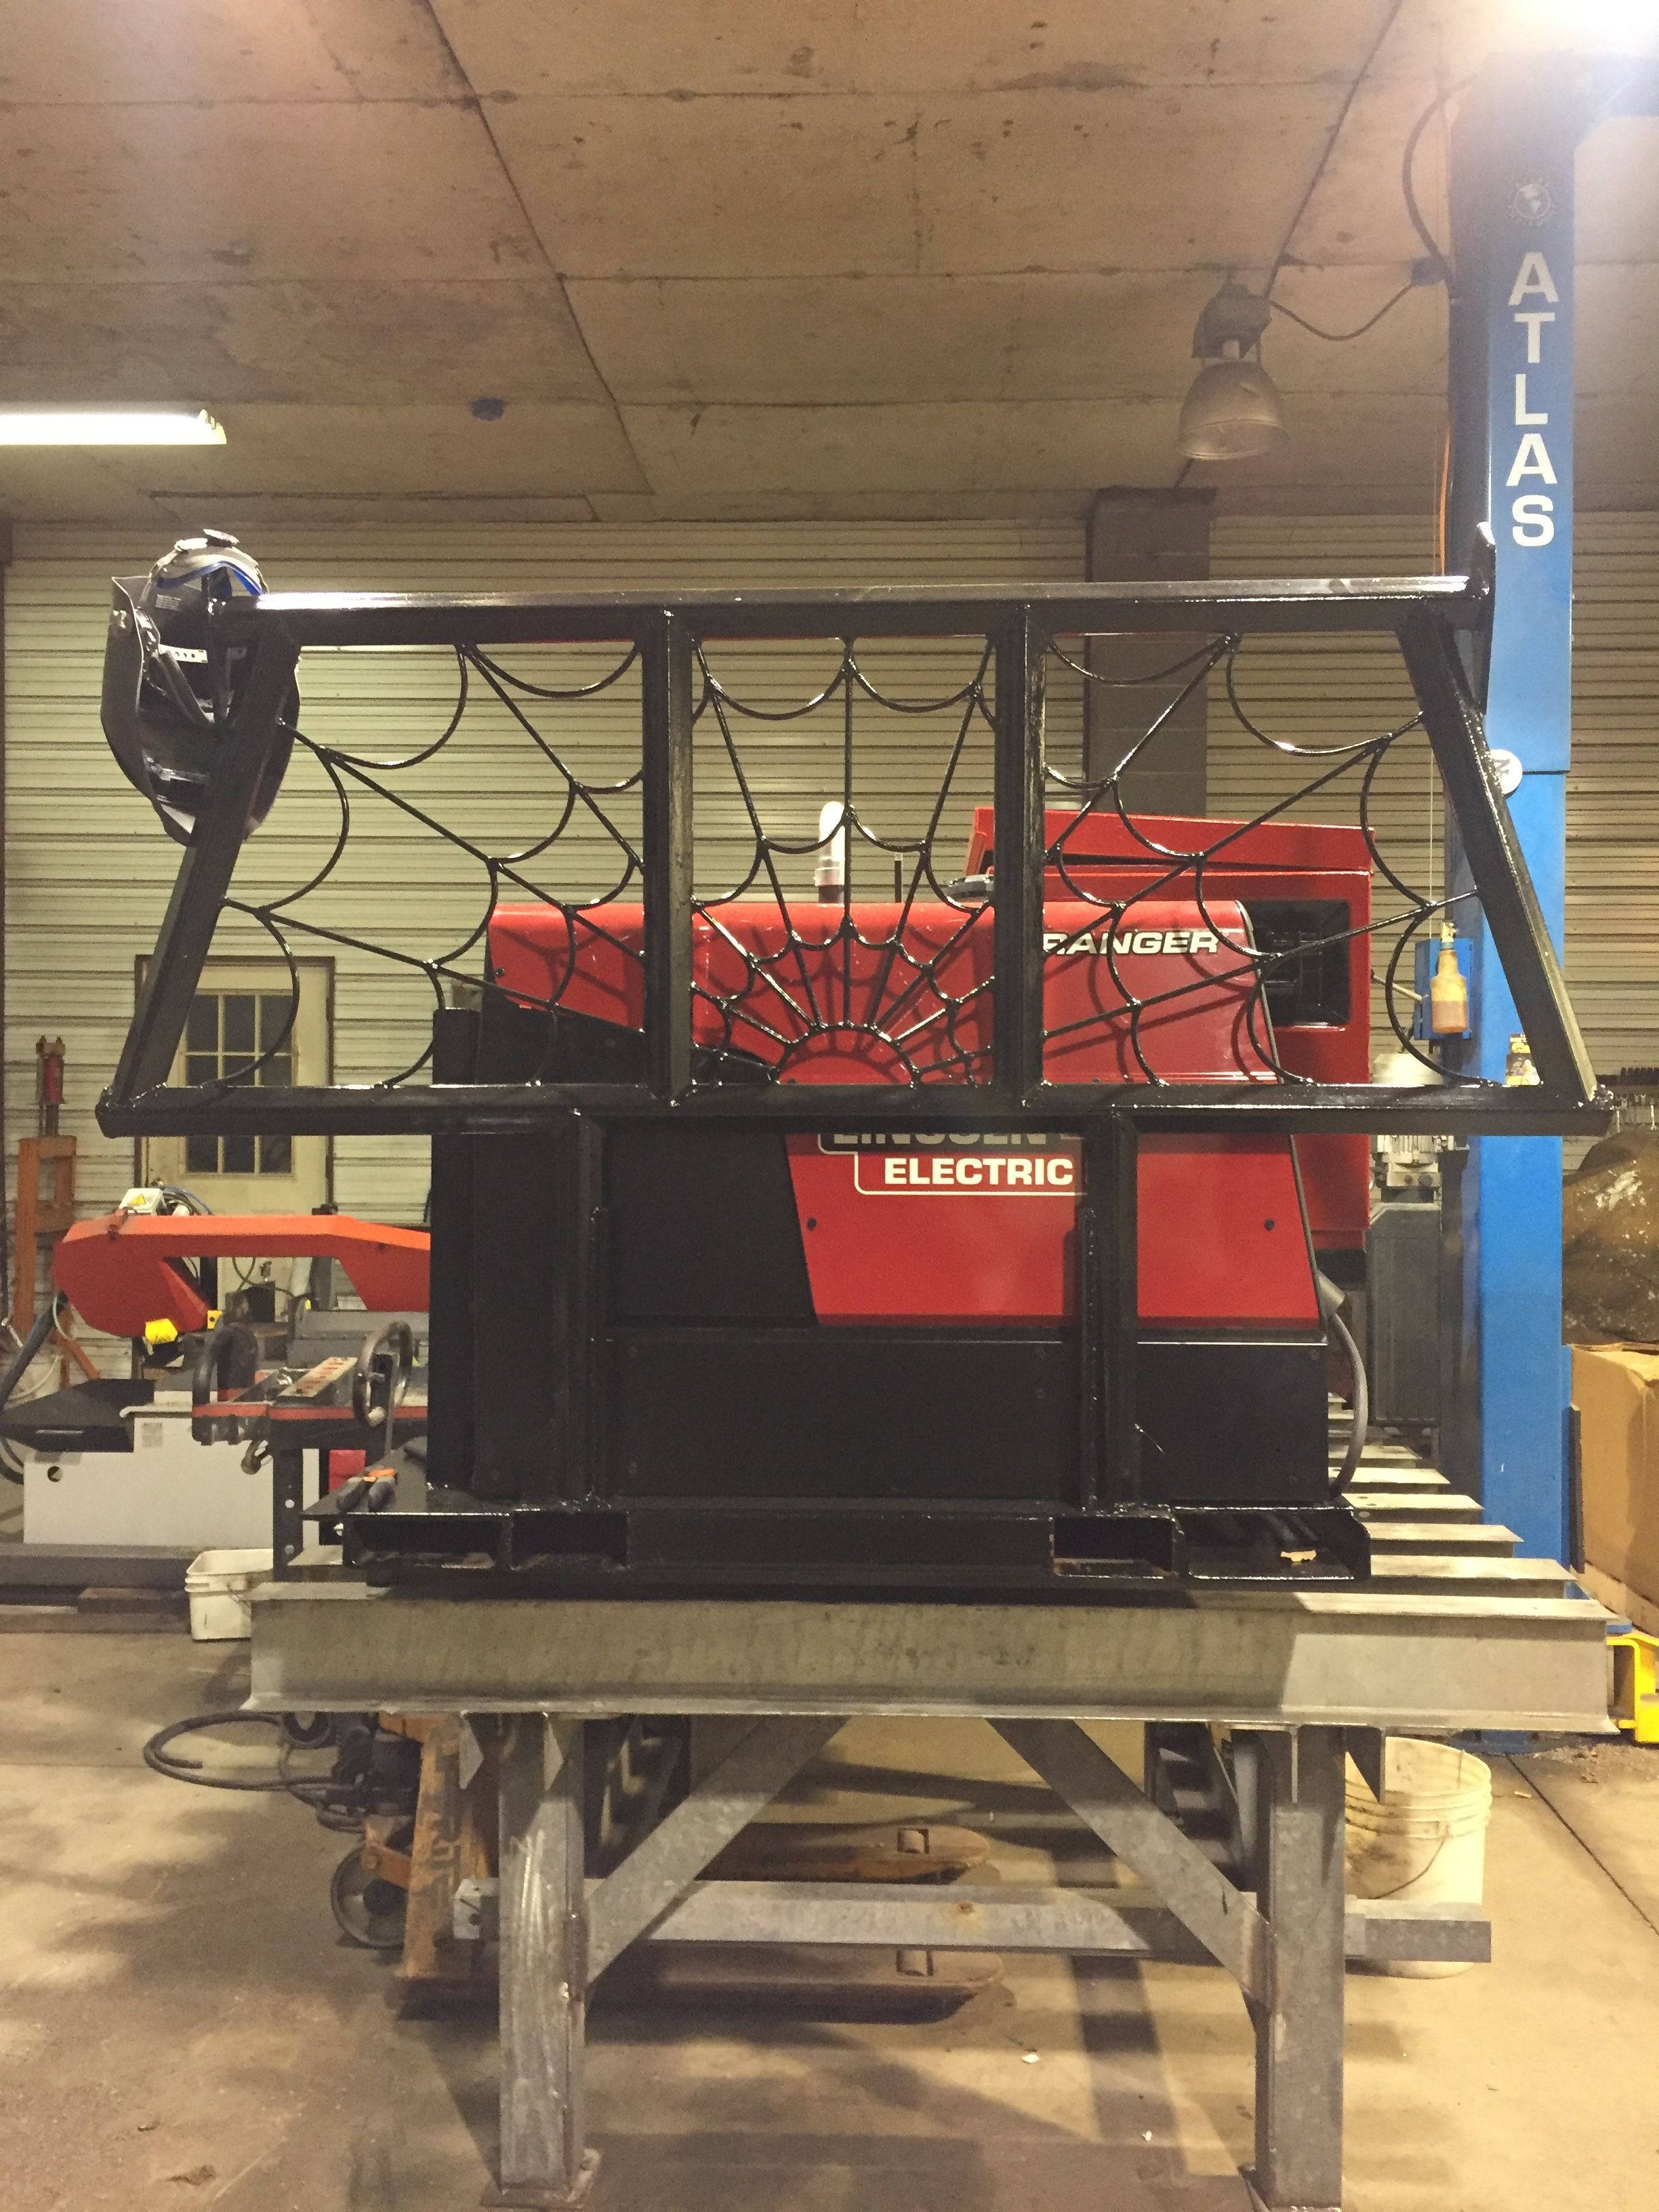 Pin by The real Al3 on Leonberger welding Rig Welding